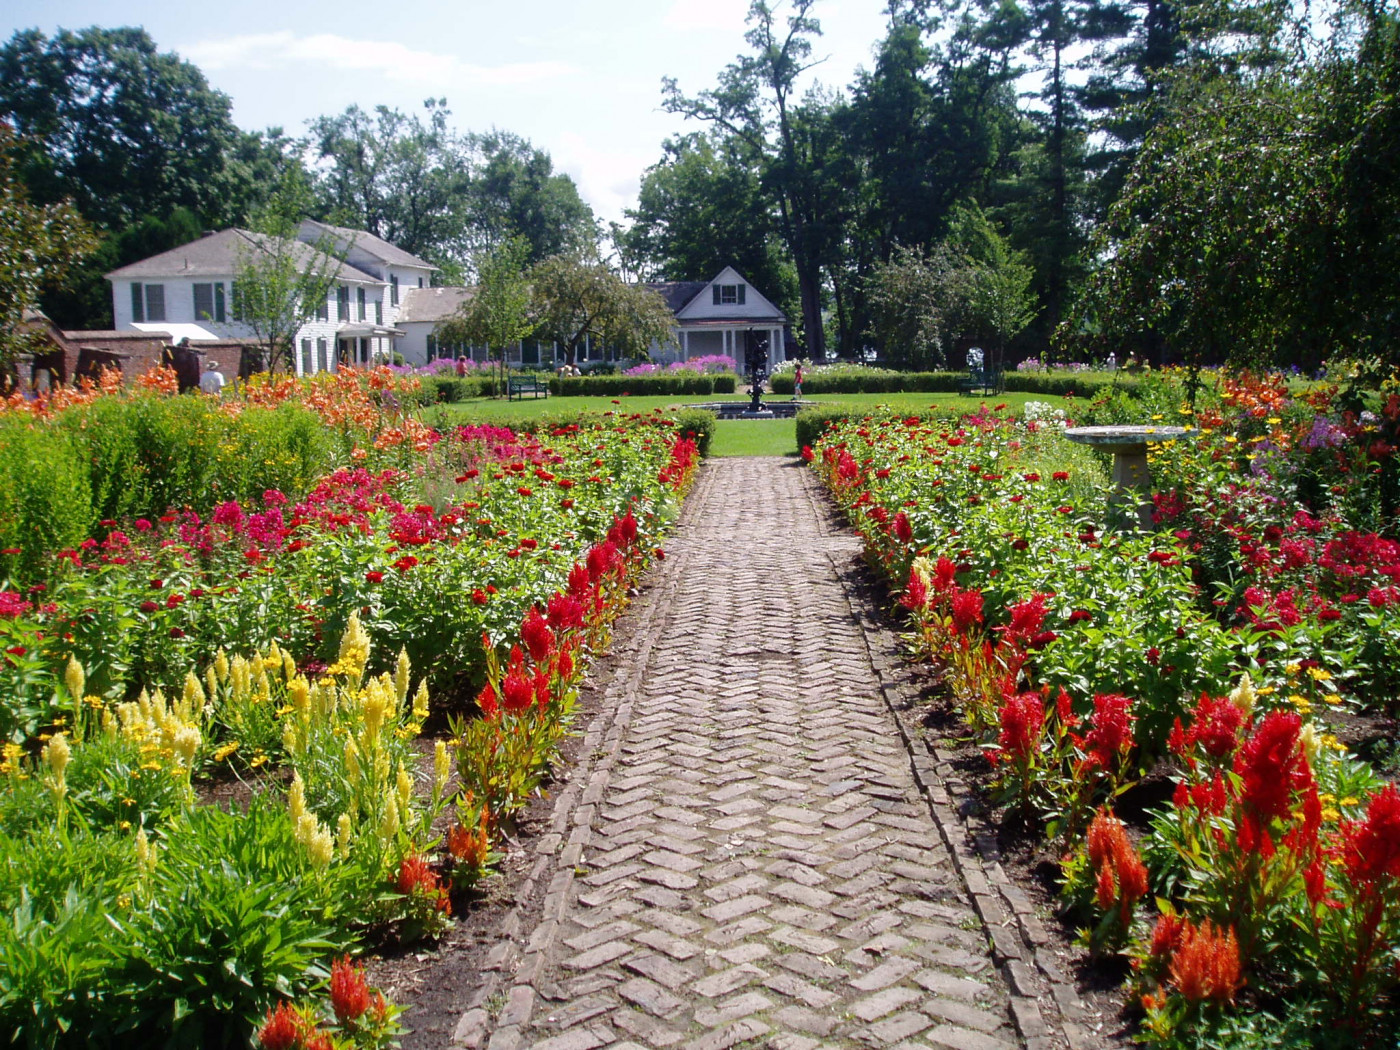 AARCH Tour: The Pells of Ticonderoga & The King's Garden